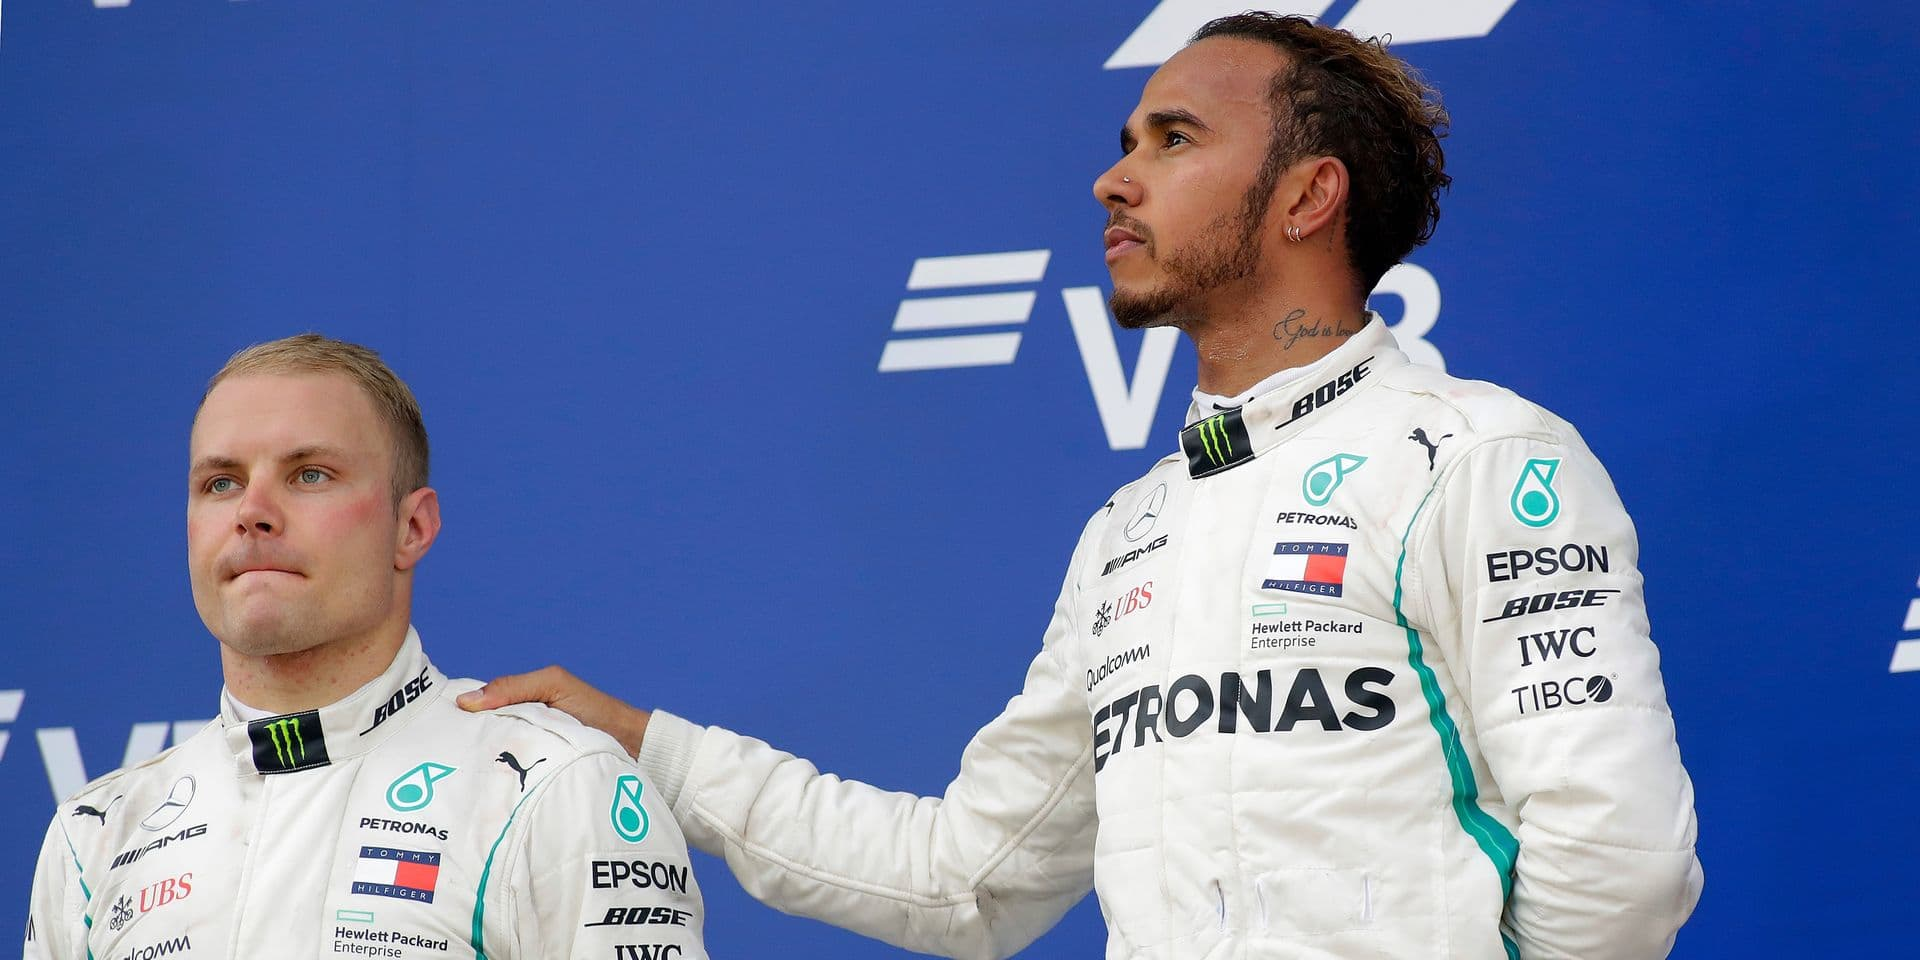 Second placed Mercedes driver Valtteri Bottas of Finland, left, and winner Mercedes driver Lewis Hamilton of Britain listen to the anthems after the Russian Formula One Grand Prix at the Sochi Autodrom circuit in Sochi, Russia, Sunday, Sept. 30, 2018.(AP Photo/Sergei Grits)